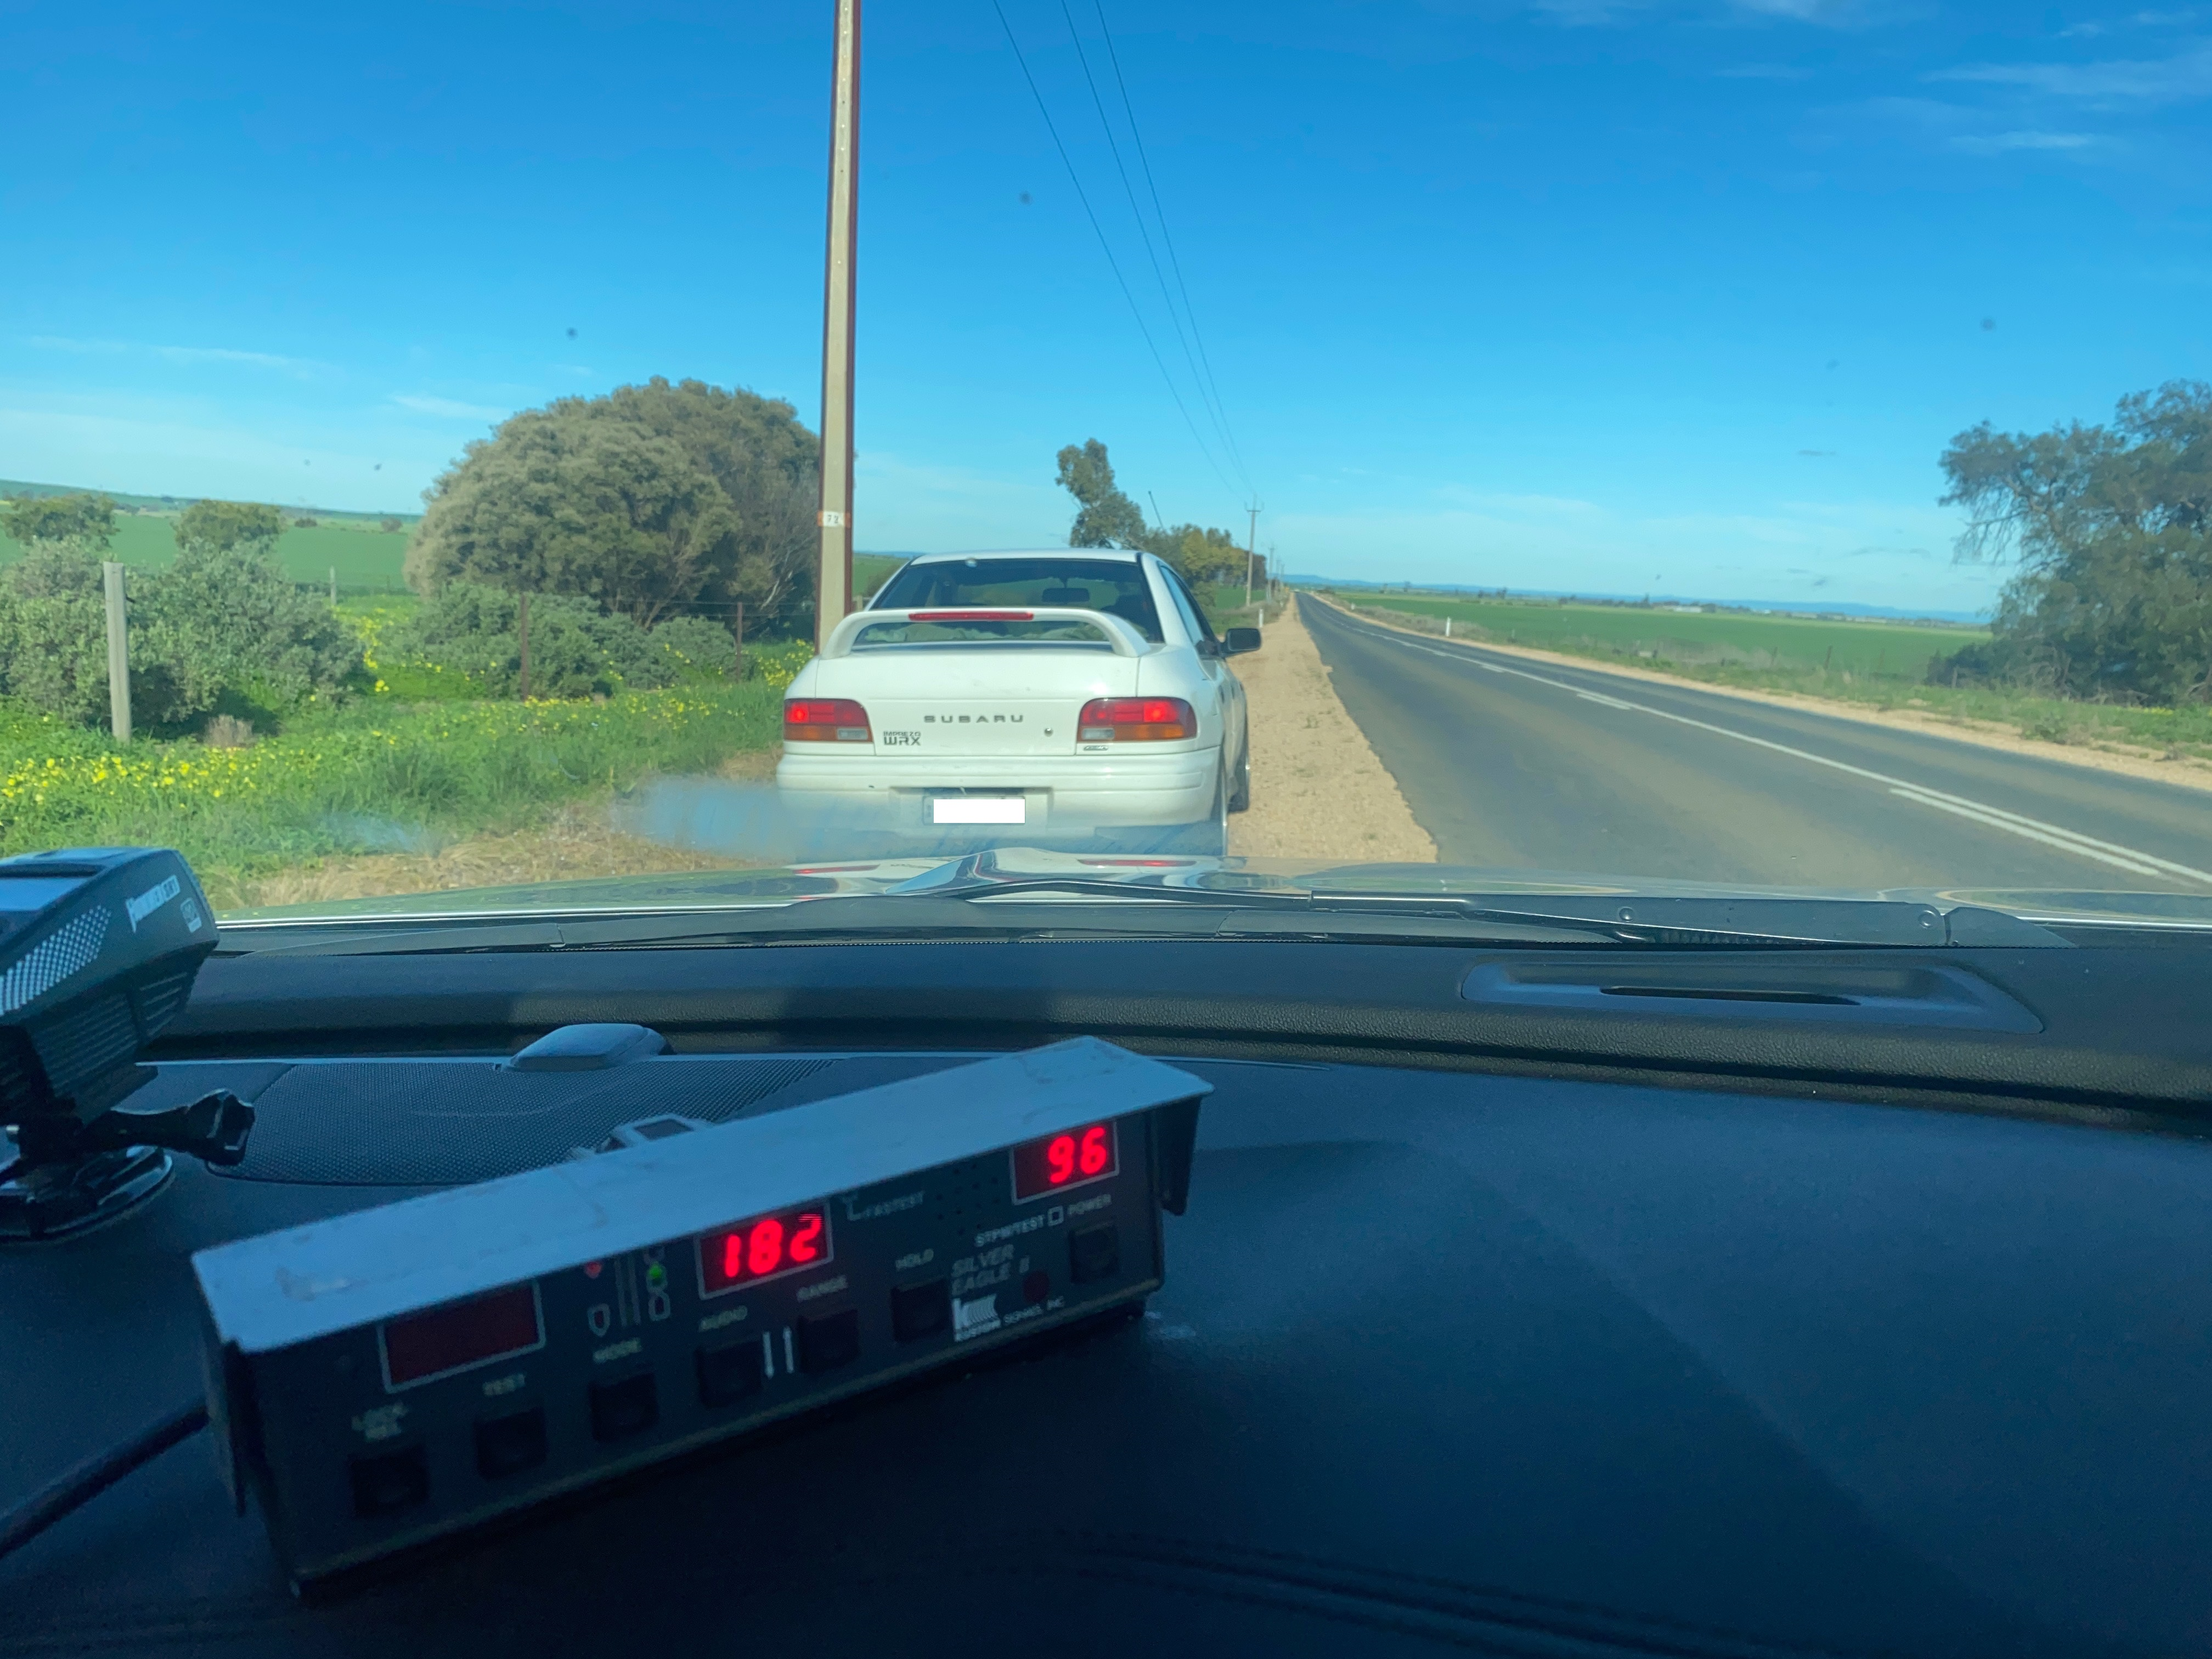 An 80-year-old South Australian Subaru driver has lost his driver's license for six months after travelling more than 80km/h over the speed limit.